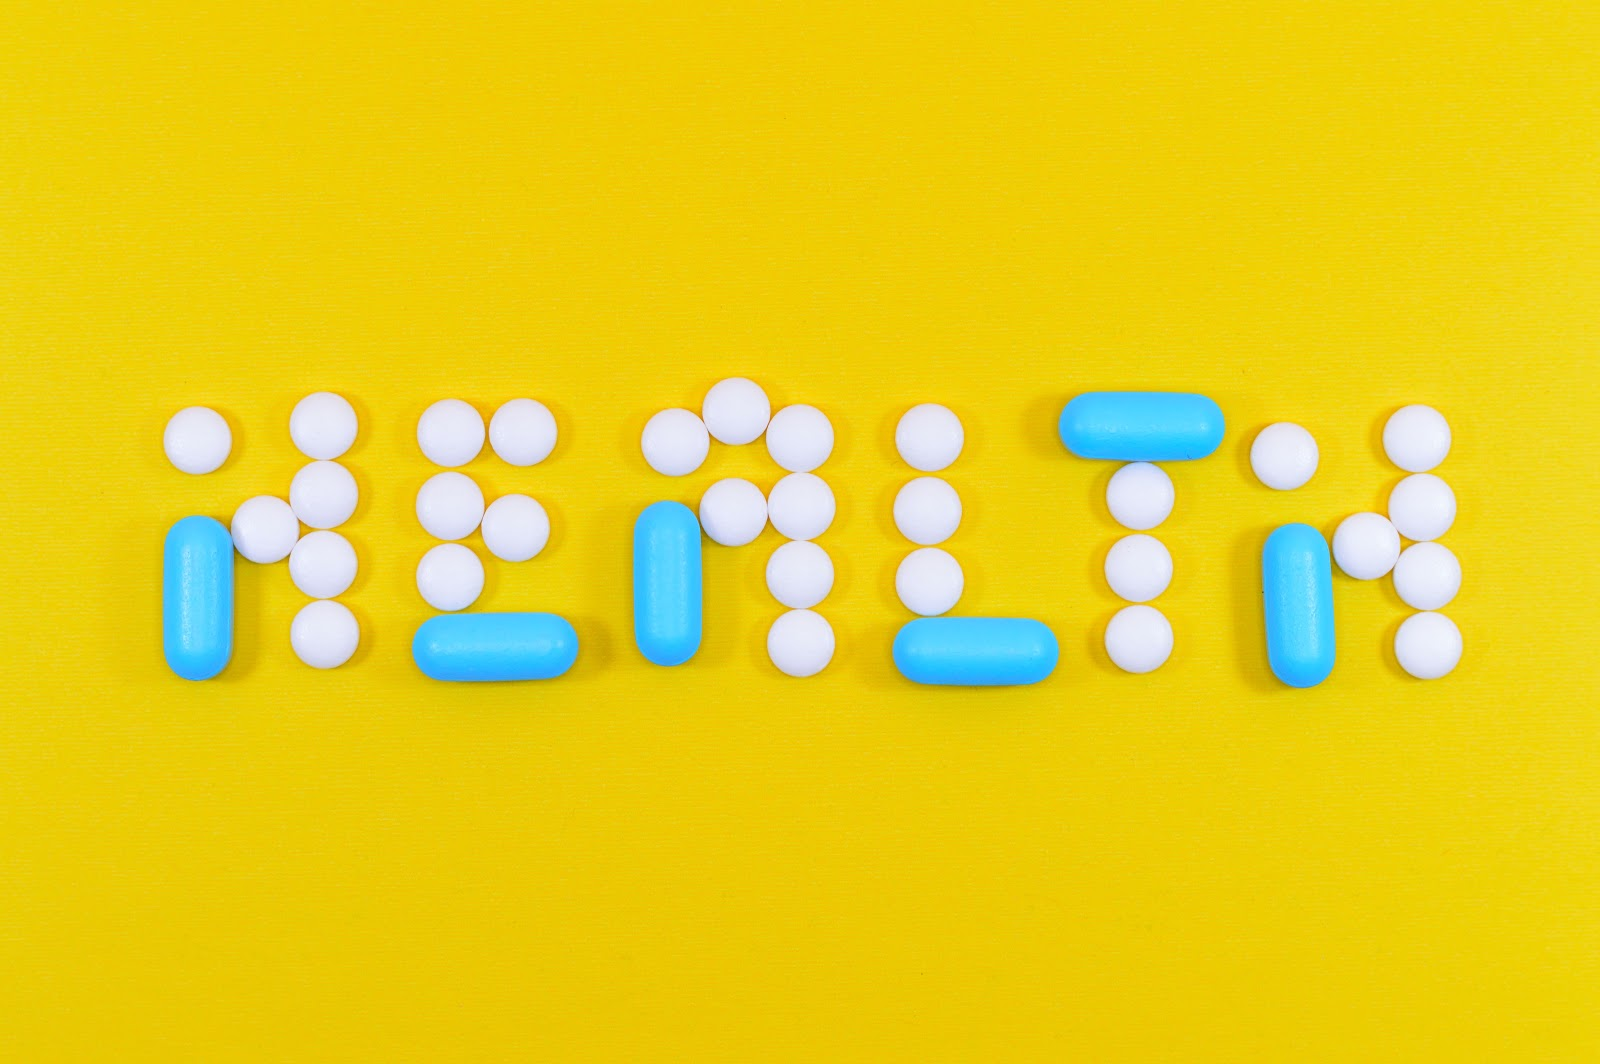 Supplements spelling out the word health atop a yellow background